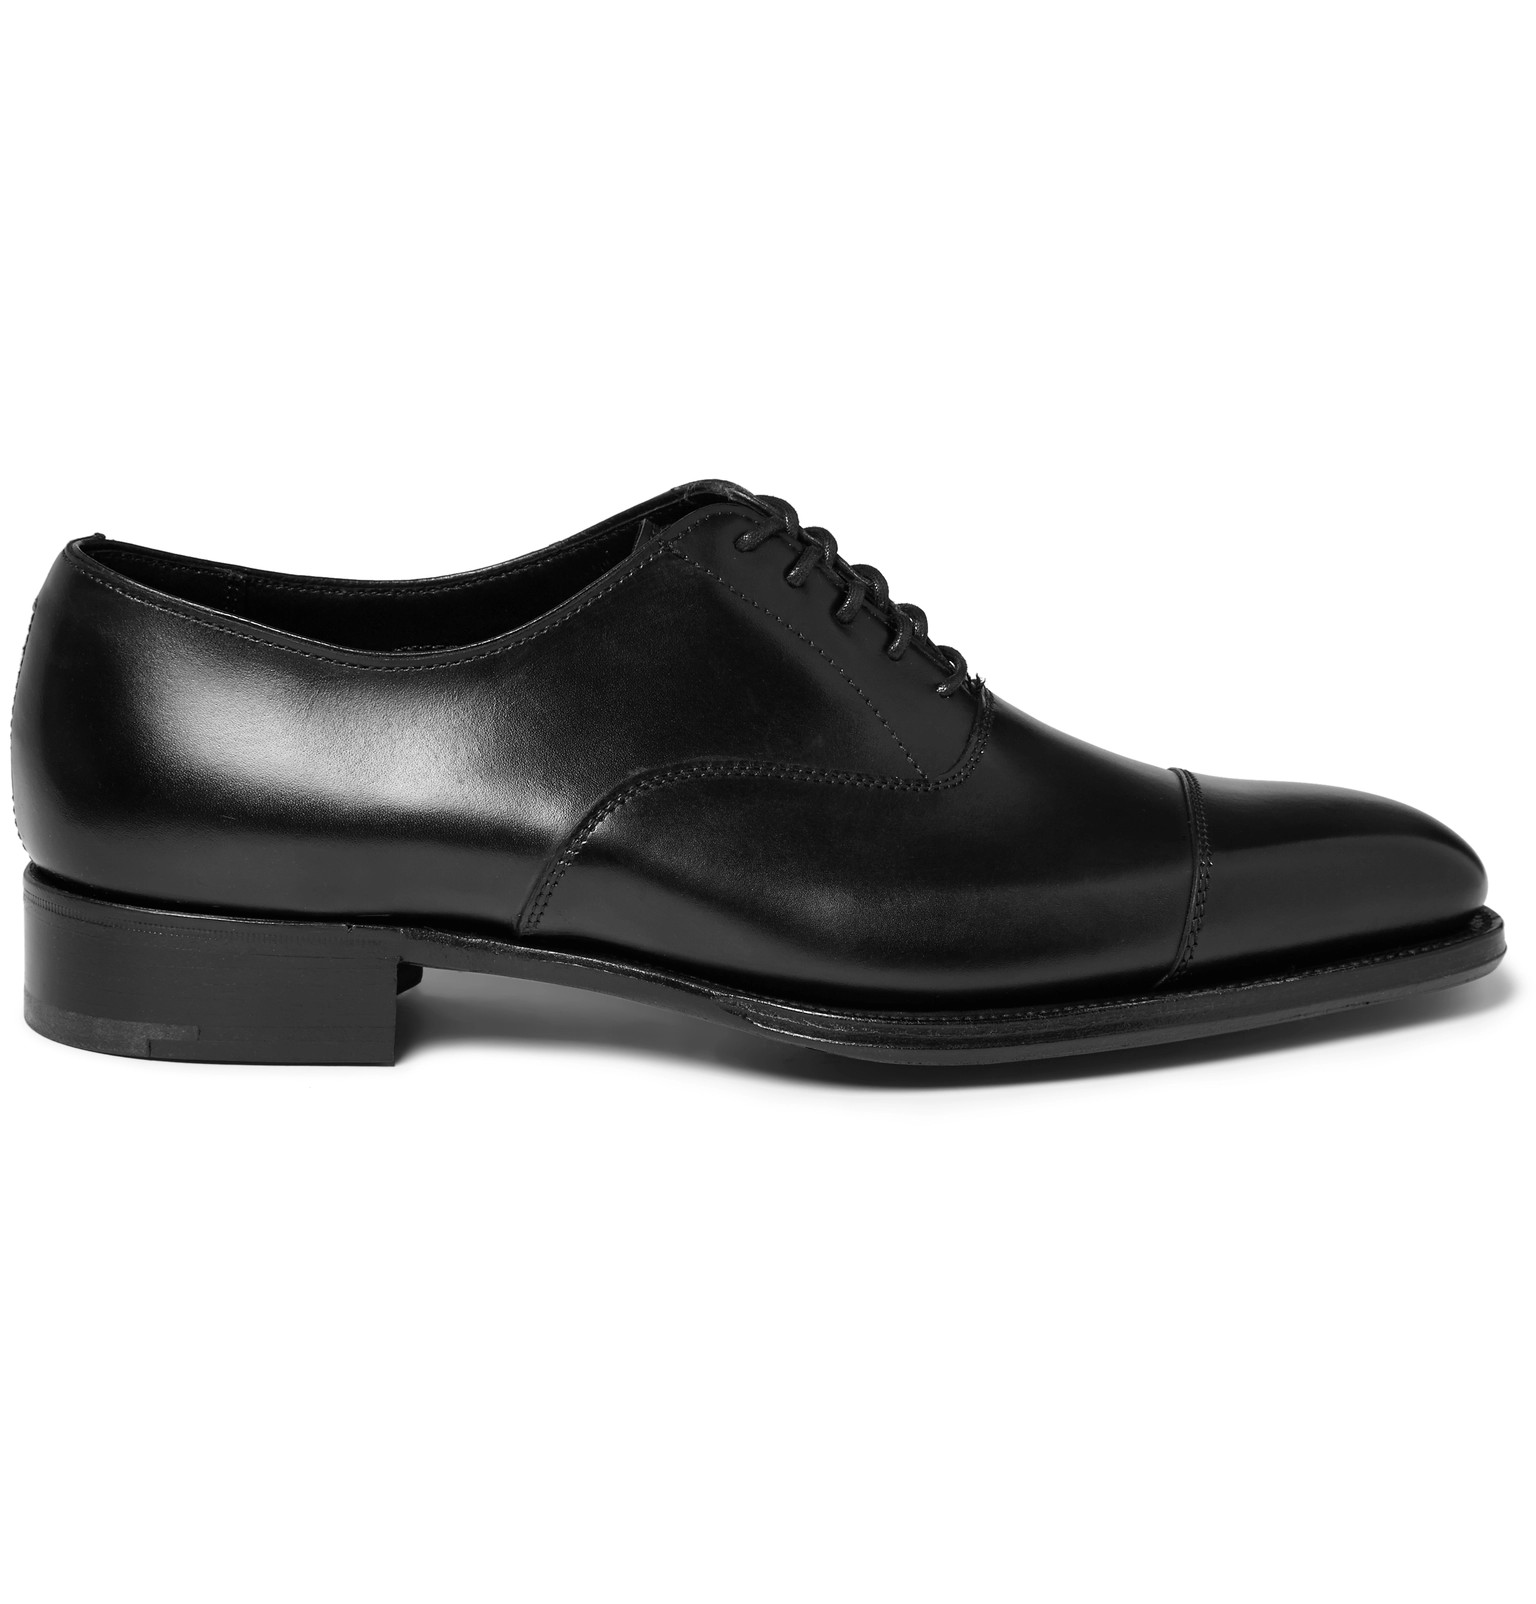 a4cc61bb3c4ec4 Kingsman - + George Cleverley Leather Oxford Shoes